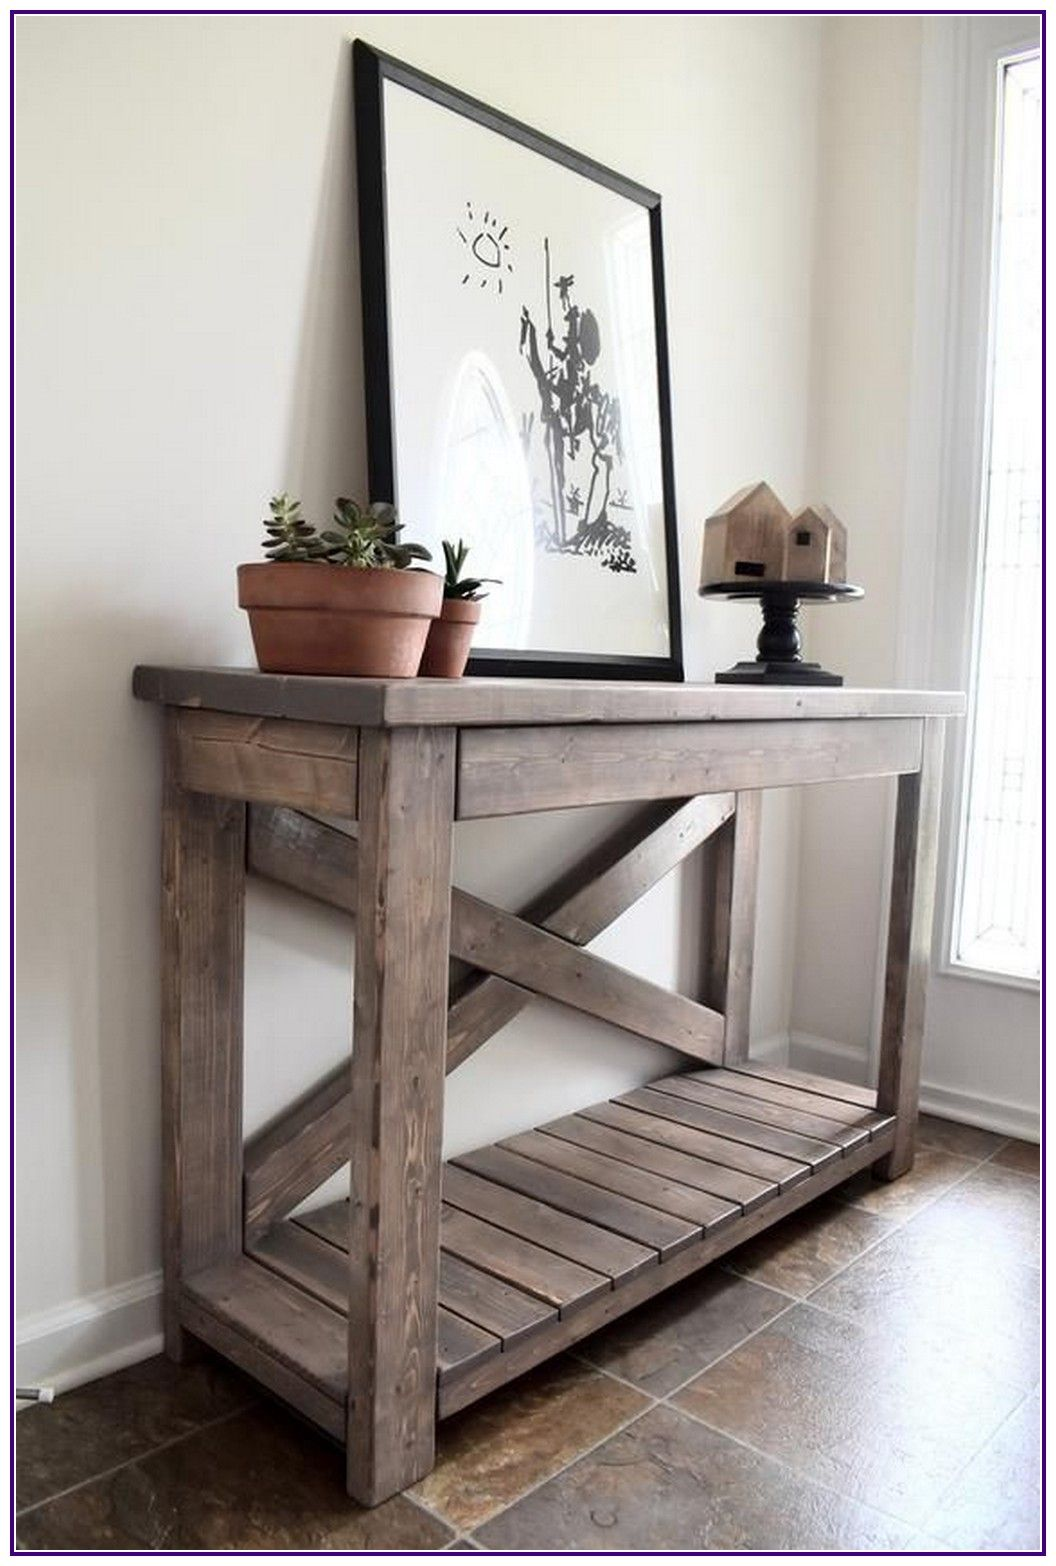 15 wood rustic console table modern farmhouse 00005